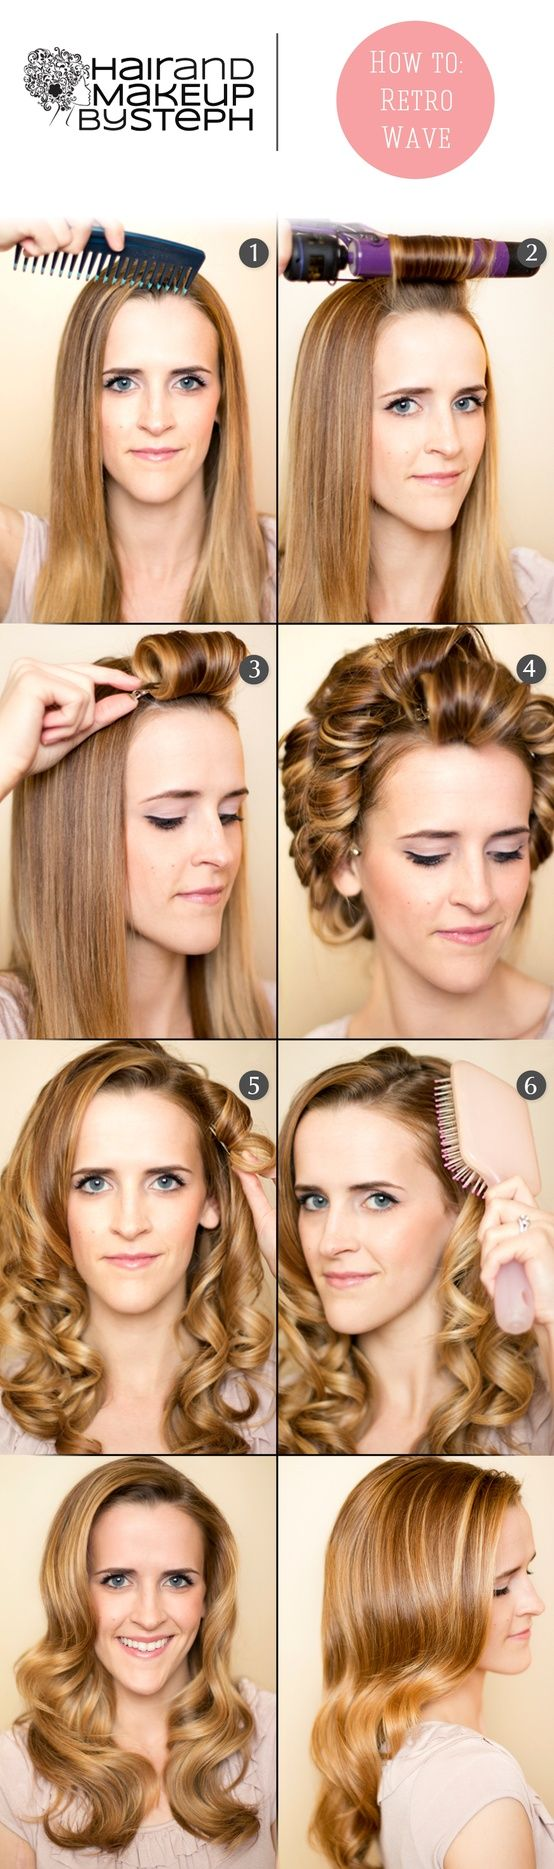 How to retro curls retro curls party hair and bridal showers